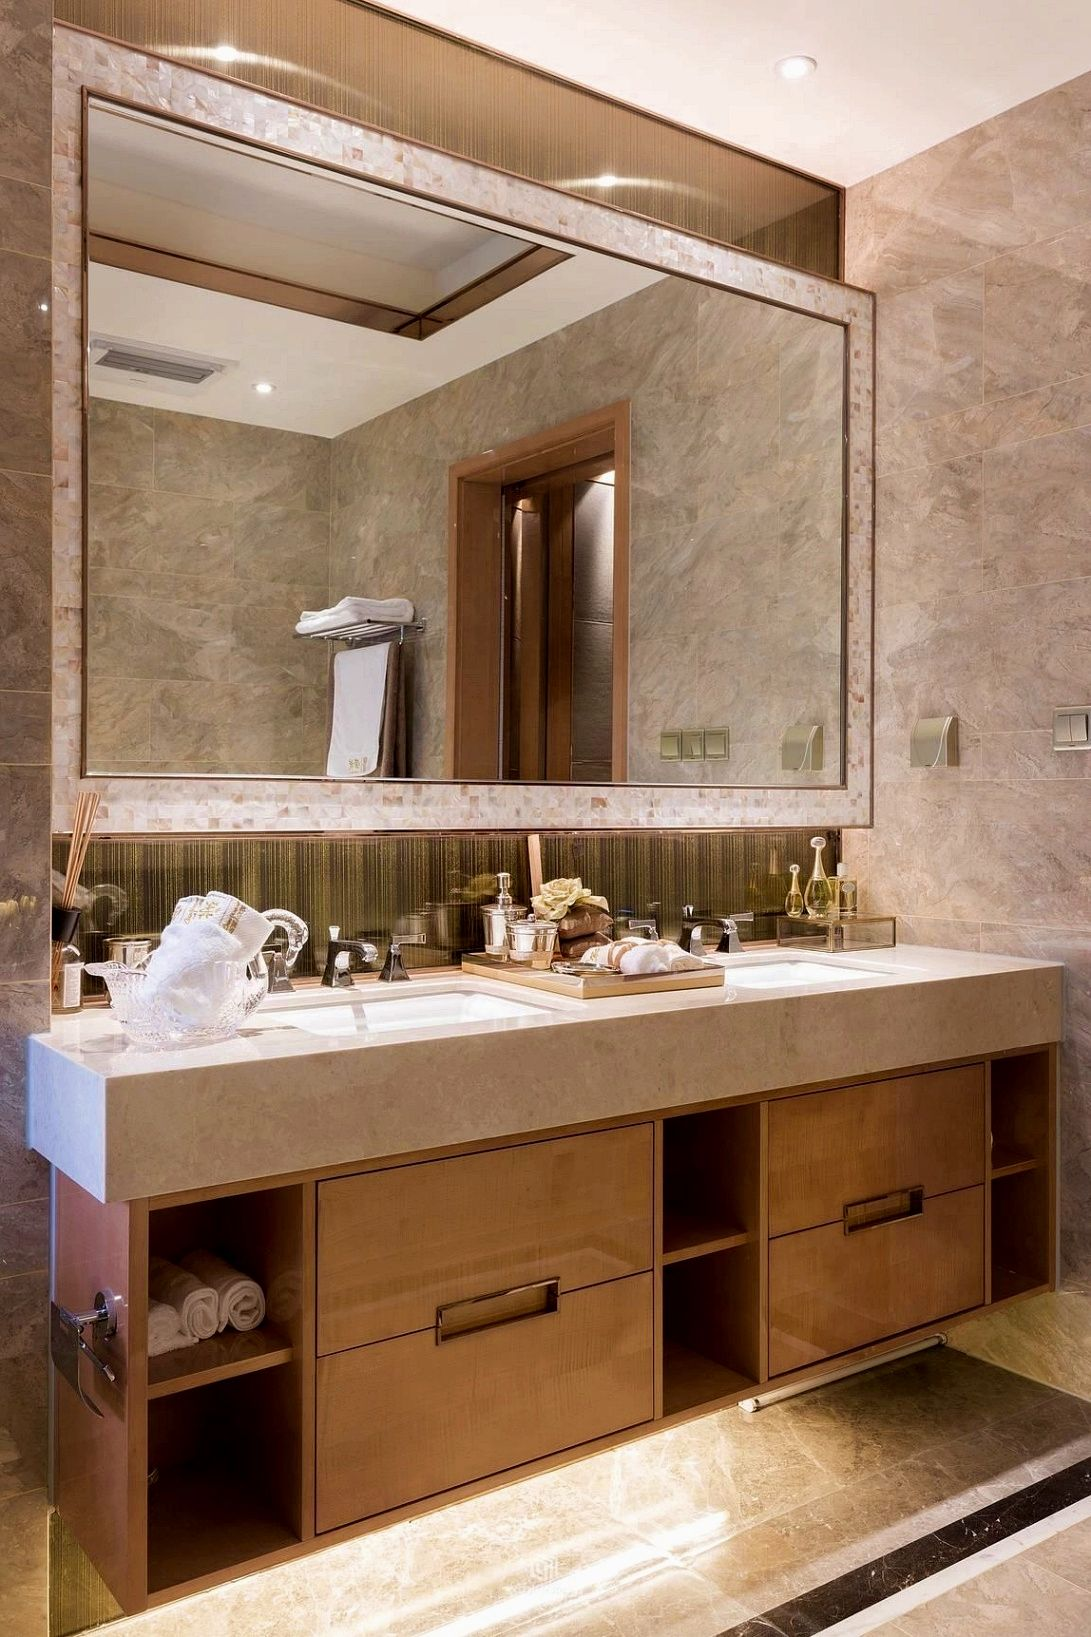 Bathroom Decor Diy Tips This Permits The Child To Participate In Clear Some Time And Organize Toys In Suc Bathroom Design Decor Bathroom Decor Bathroom Style